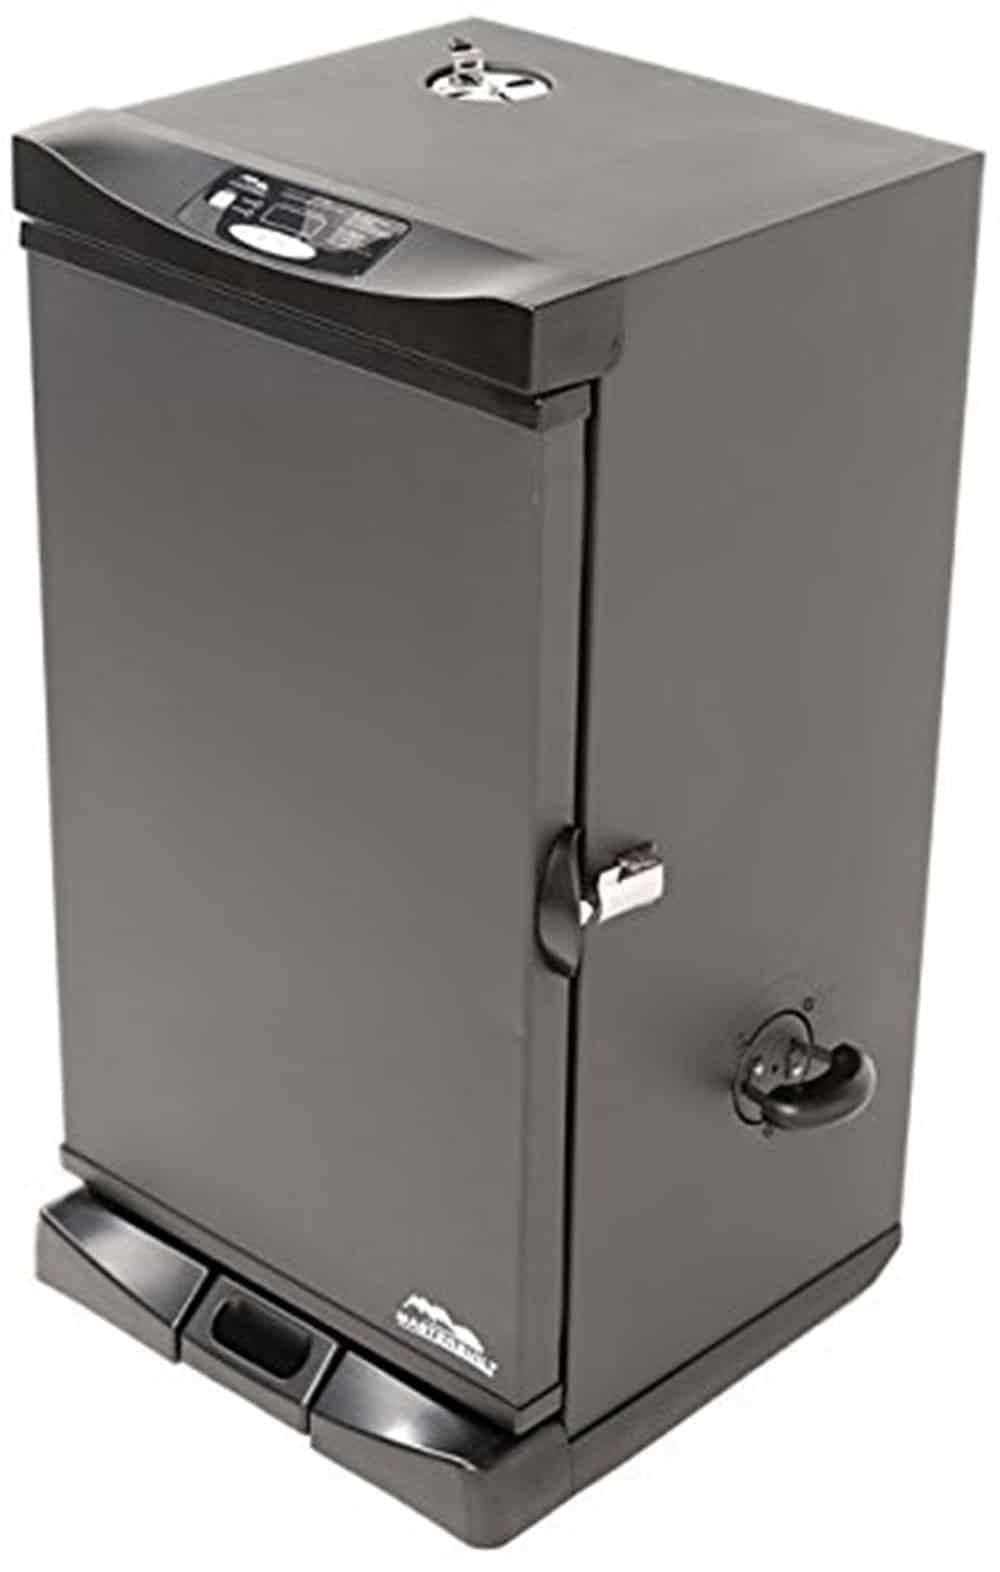 Electric digital smoker with front controller in black finish.